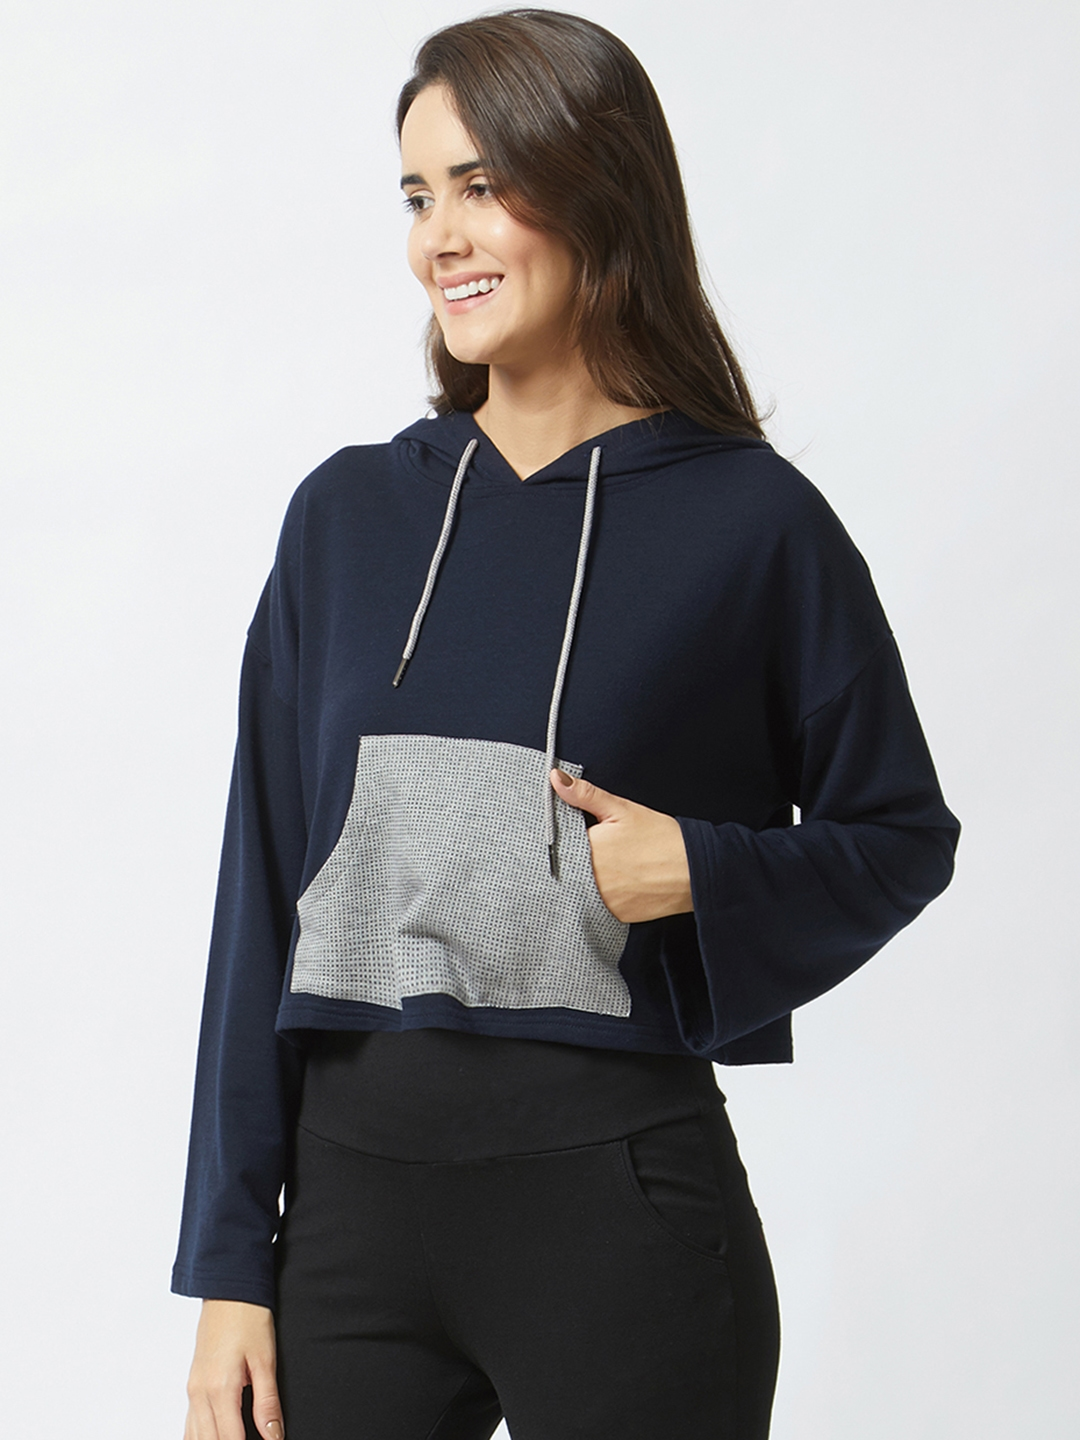 Mystere Paris Women Navy Blue Solid Hooded Sweatshirt